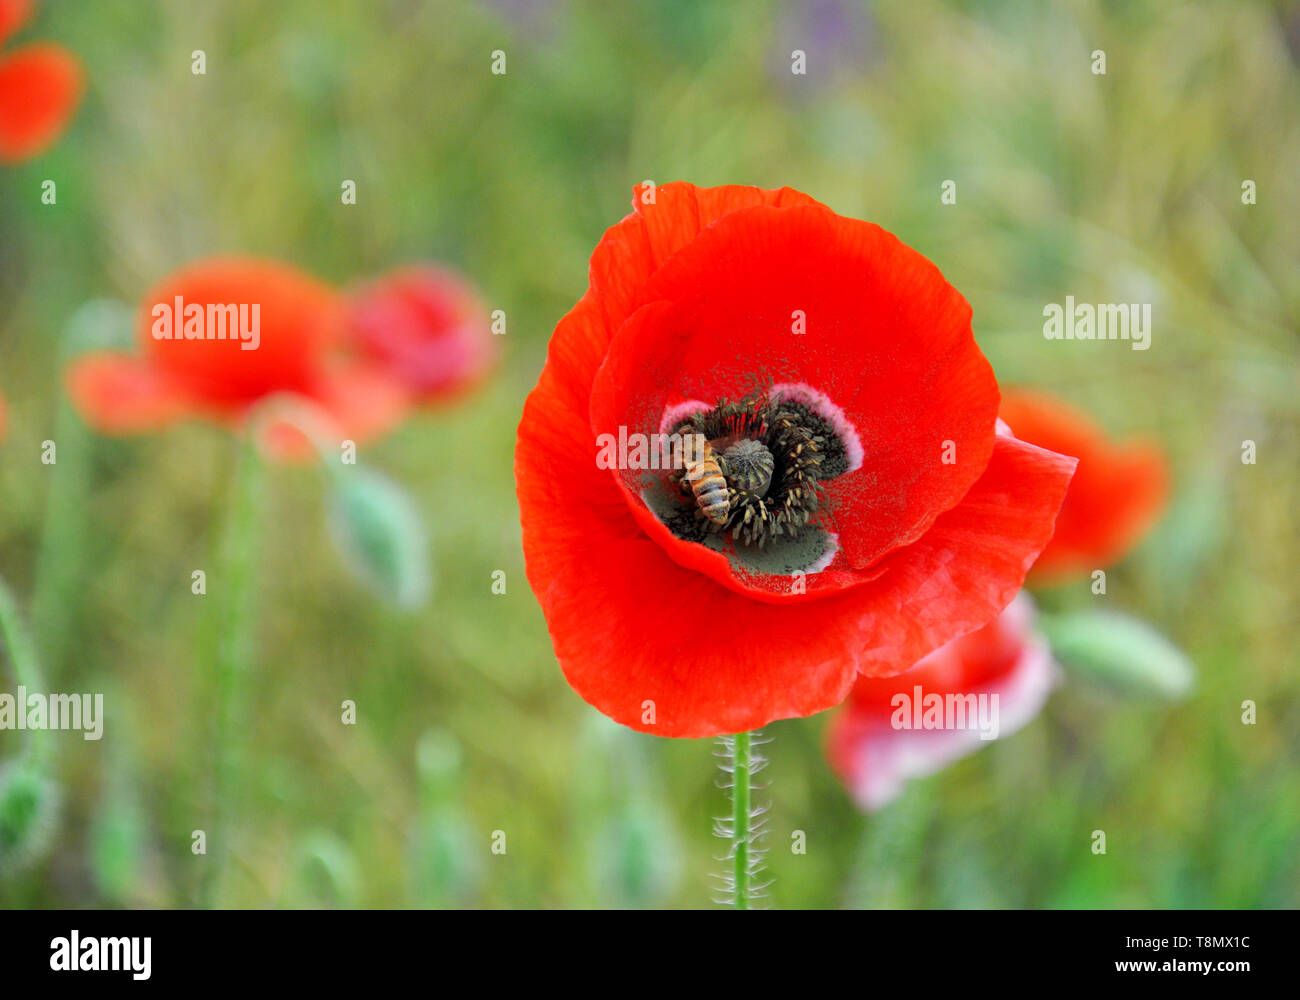 Red poppy and bee on a green field on a sunny day. Spring field of poppies. - Stock Image